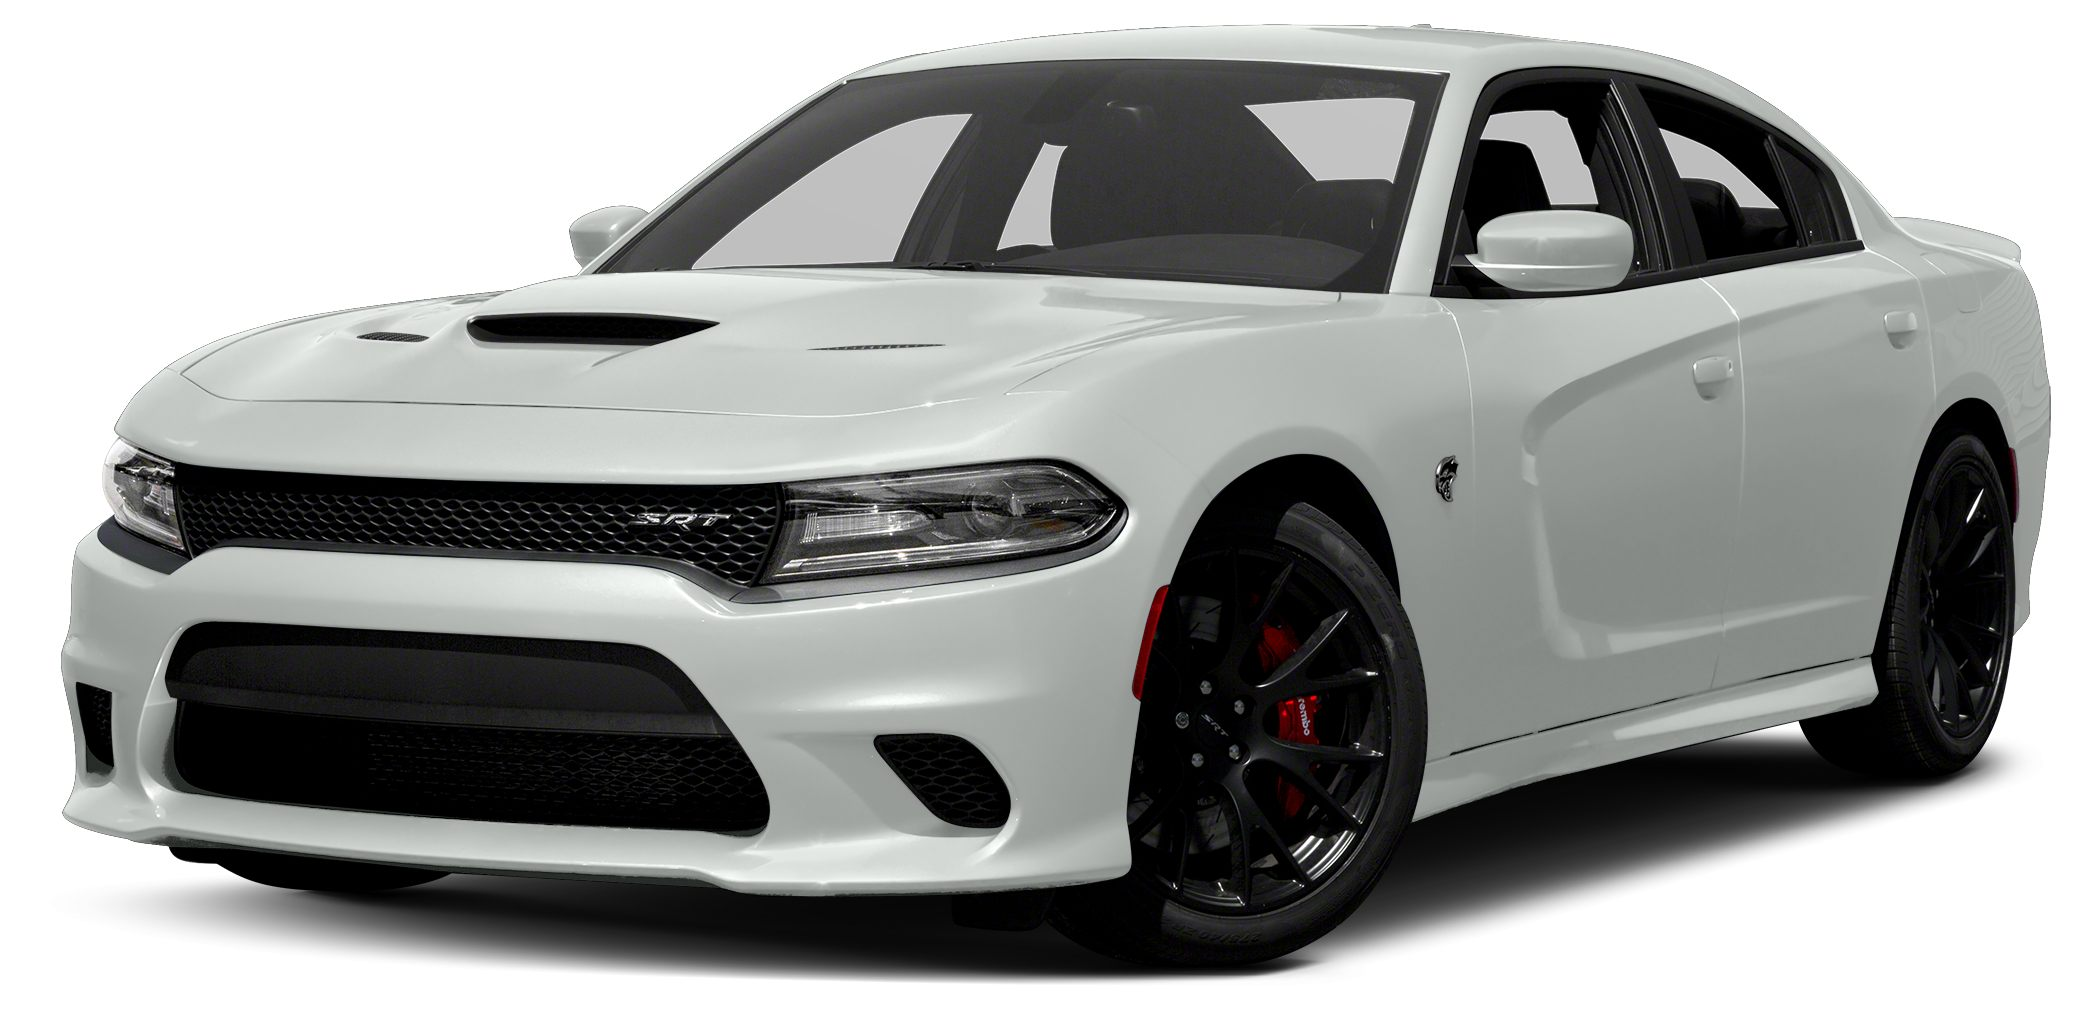 2018 Dodge Charger SRT Hellcat All Around hero Climb into this wonderful 2018 Dodge Charger SRT